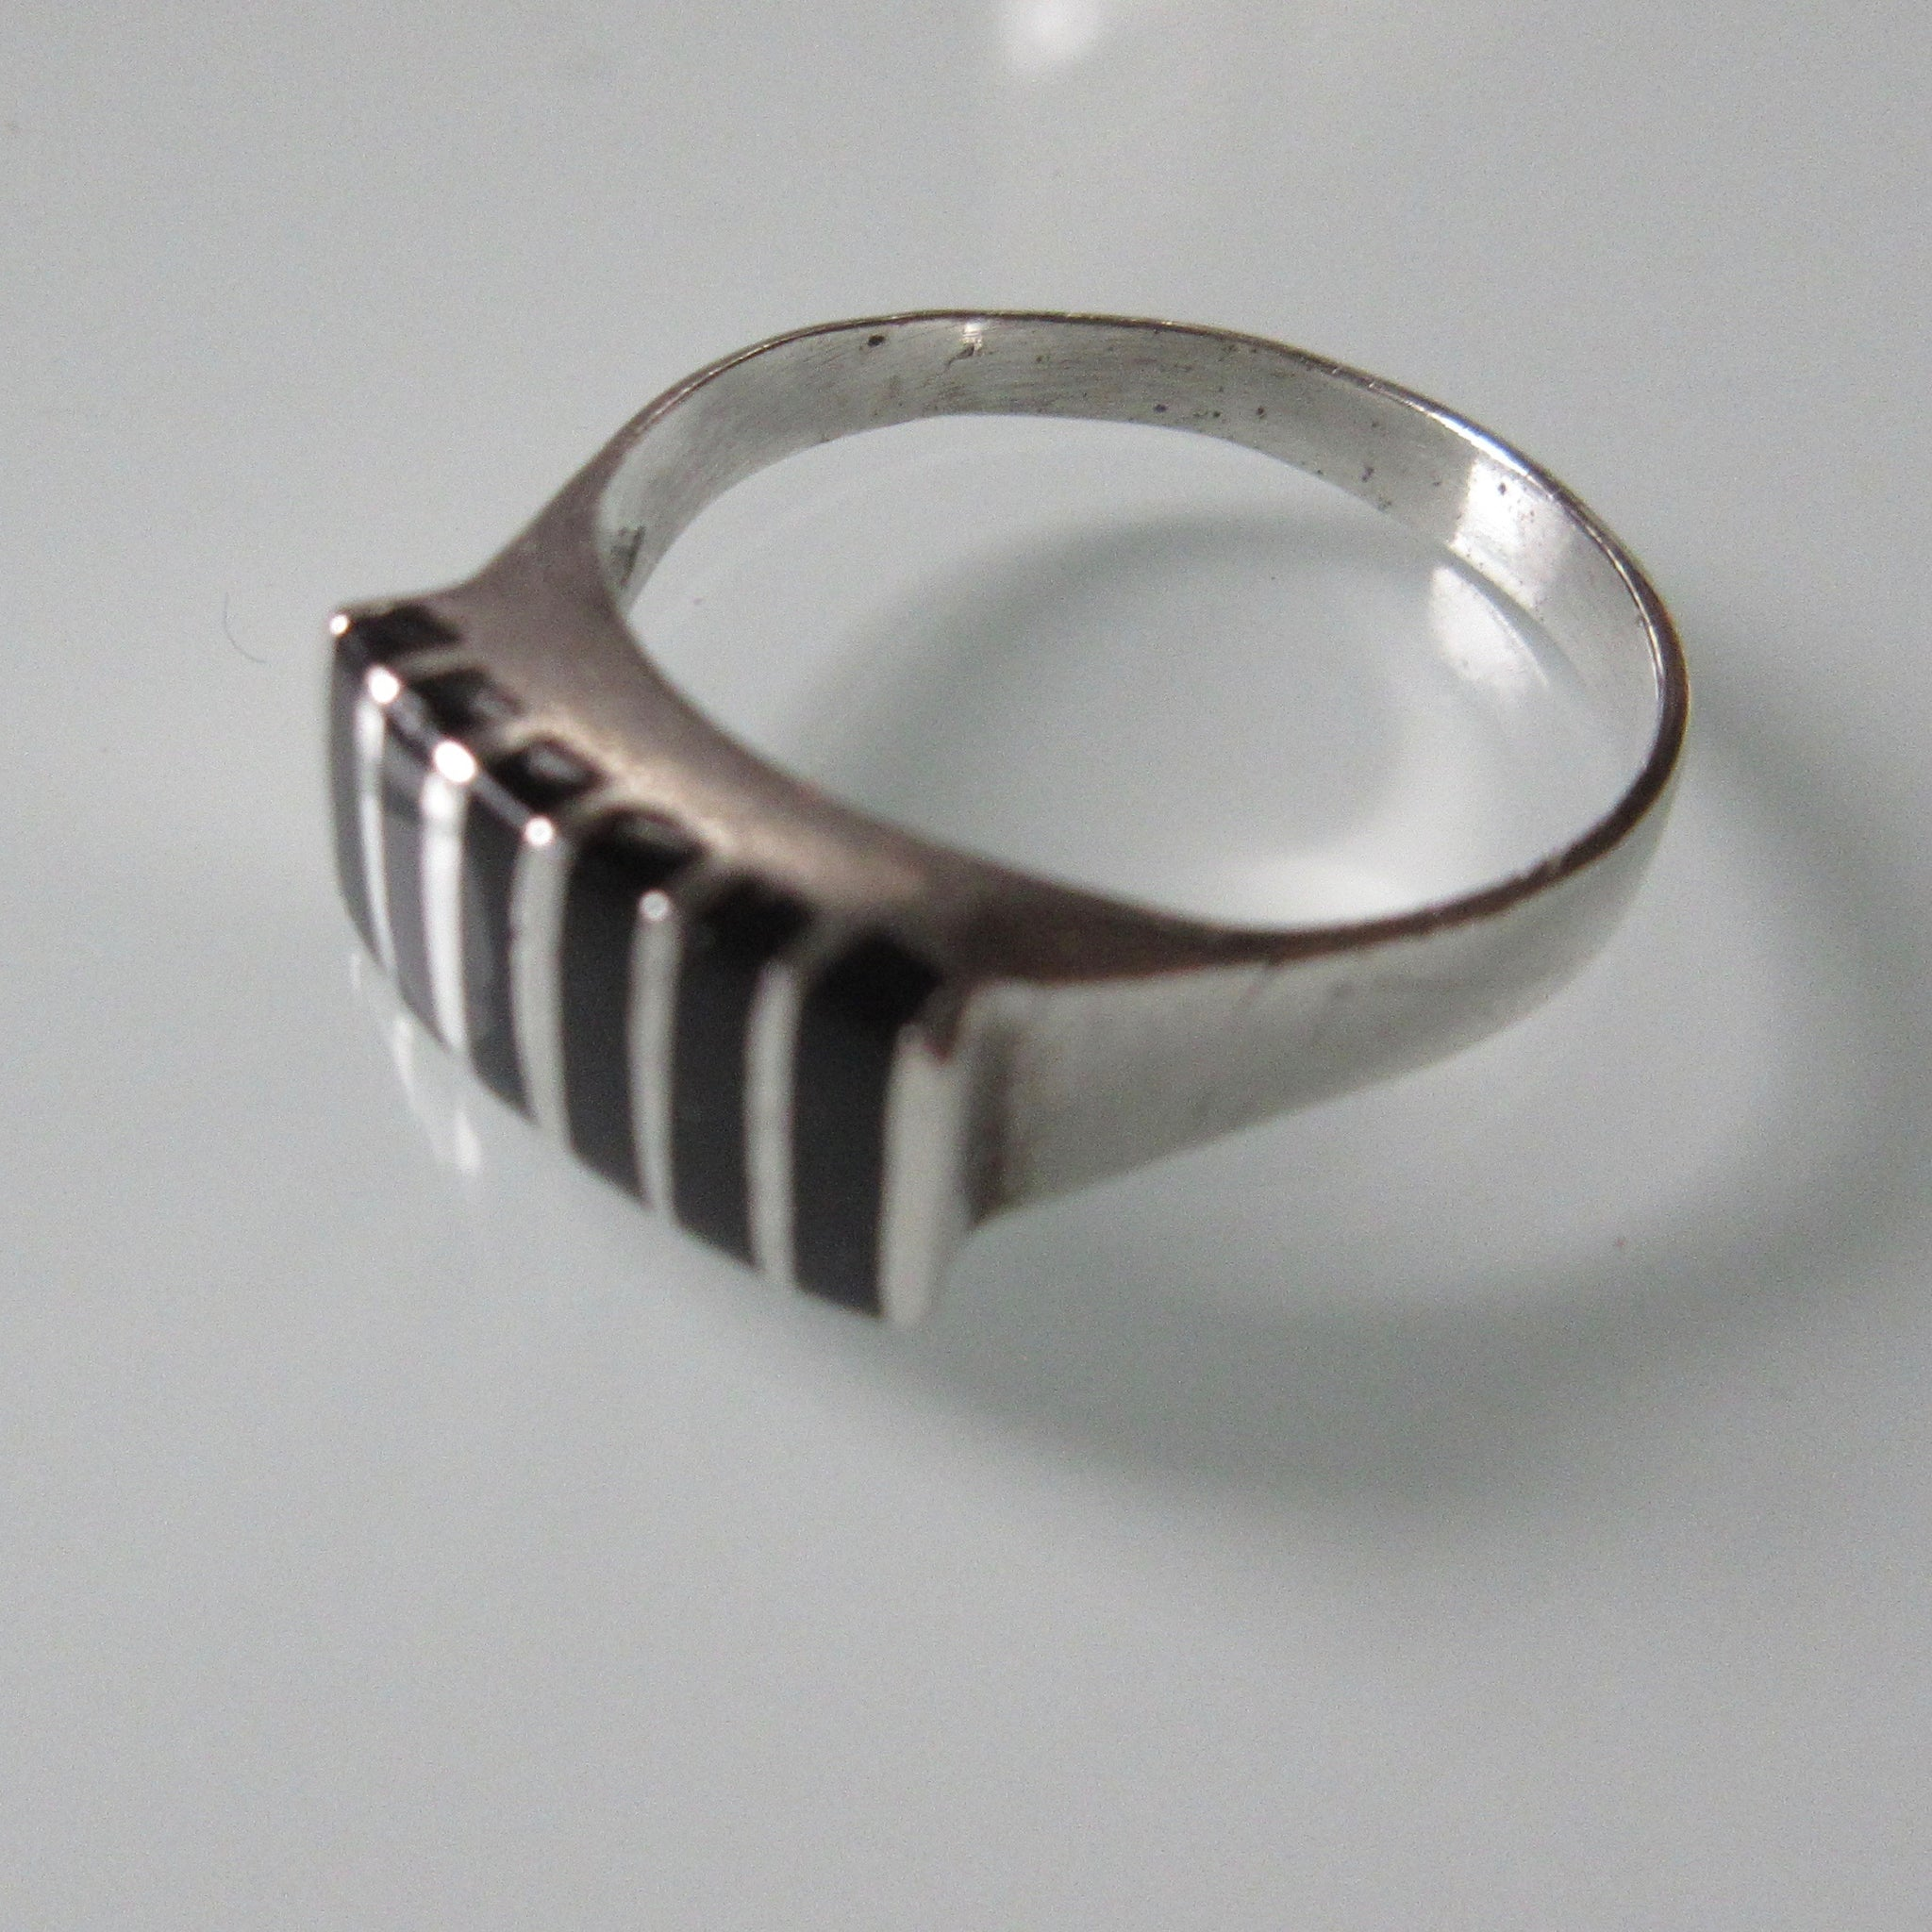 Vintage Bars Onyx Sterling Silver Ring